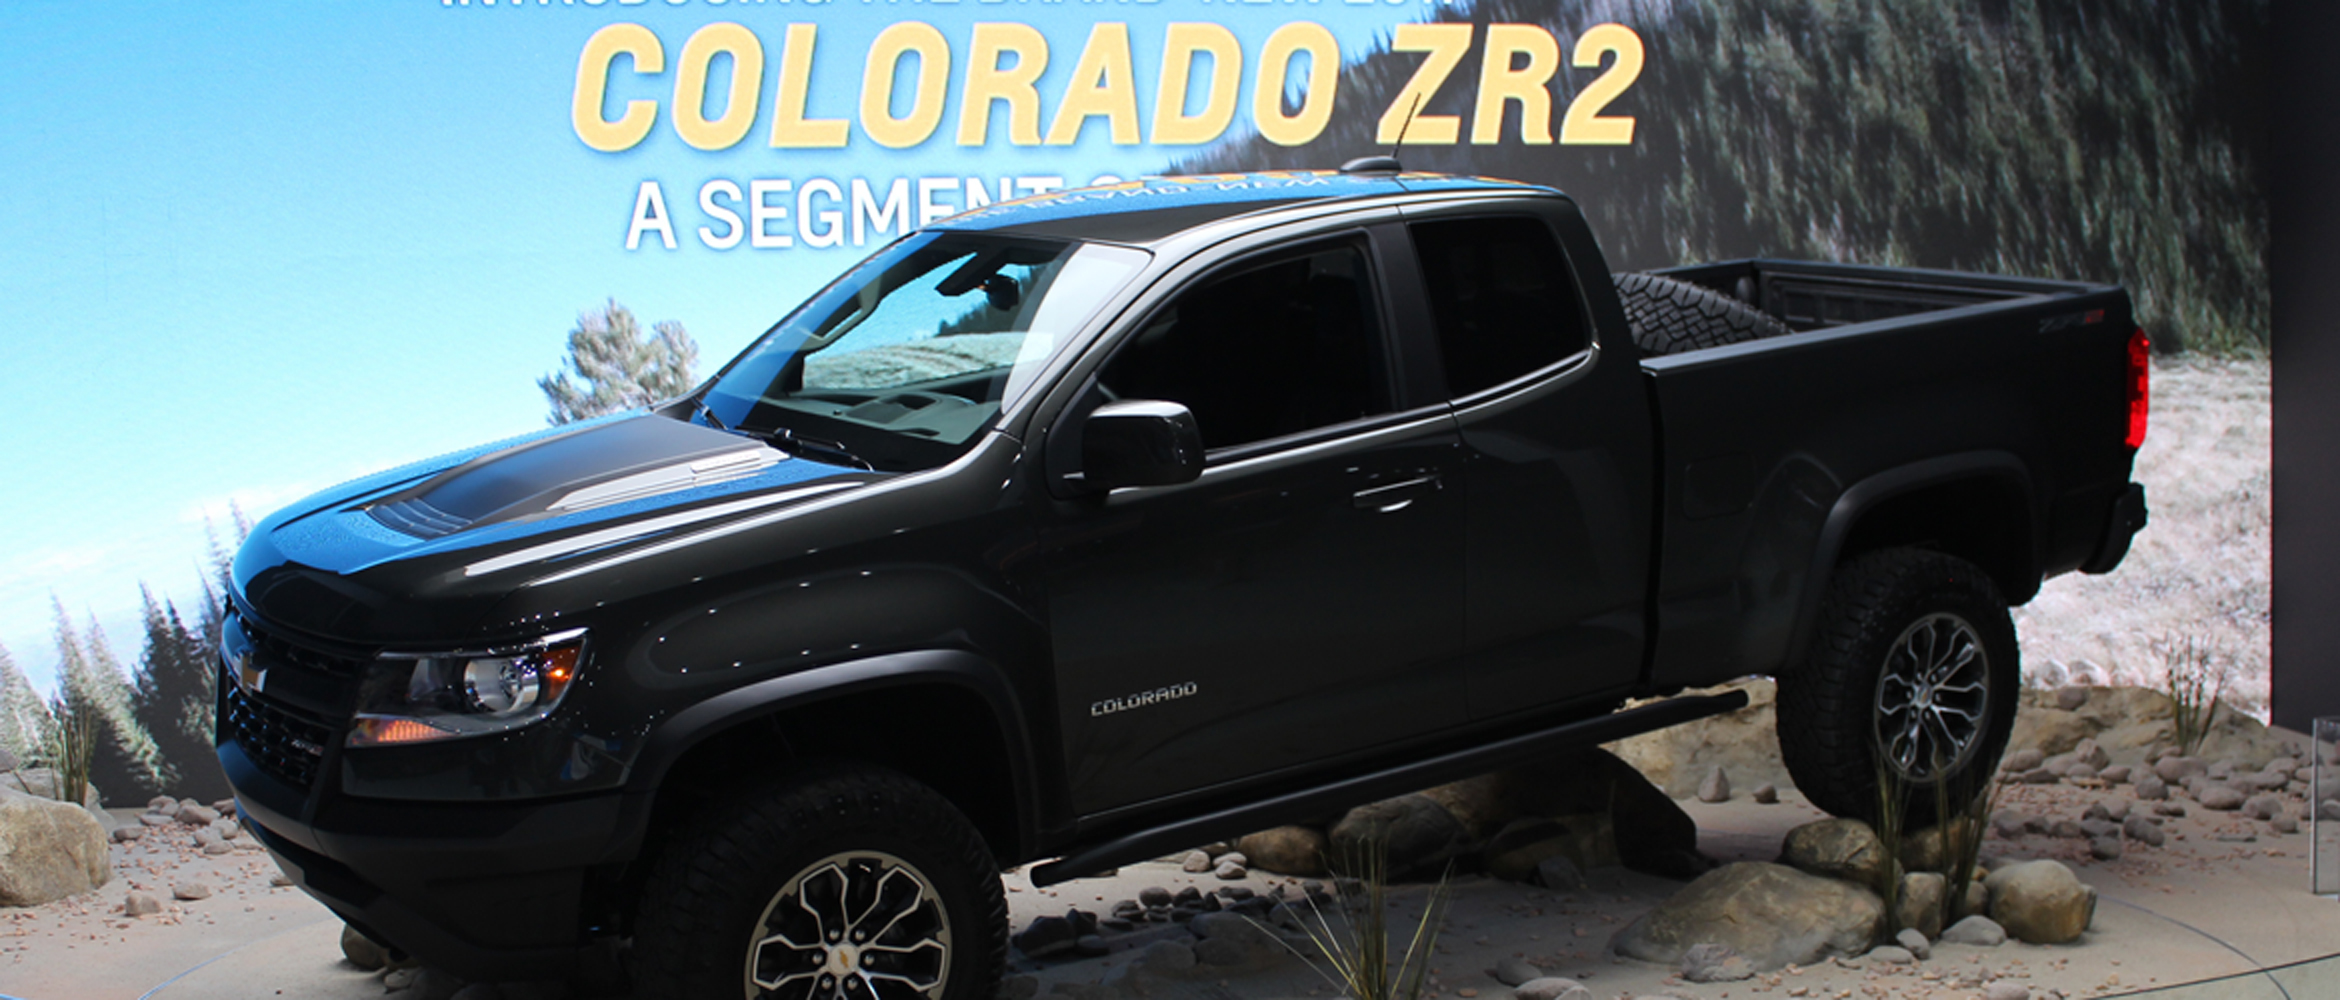 colorado zr2